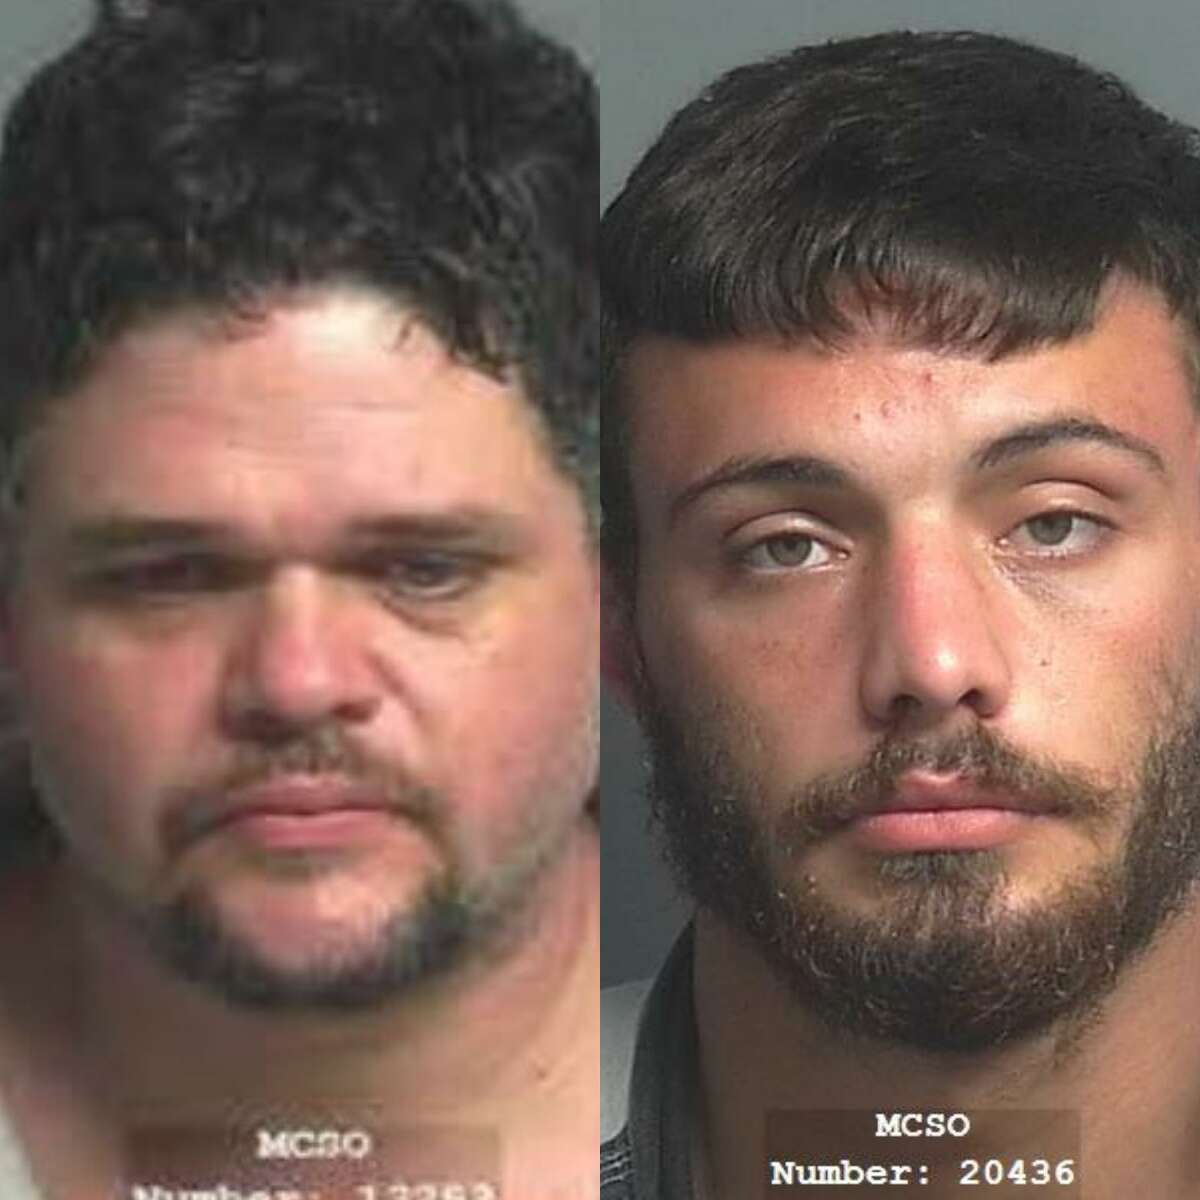 Chase Matthew Reese, 24, and Noe Antonio Saenz, 40, both of Conroe, are charged each with theft, a third-degree felony. Saenz also is charged with theft of property, a state jail felony, and possession of a prohibited weapon, a third-degree felony,